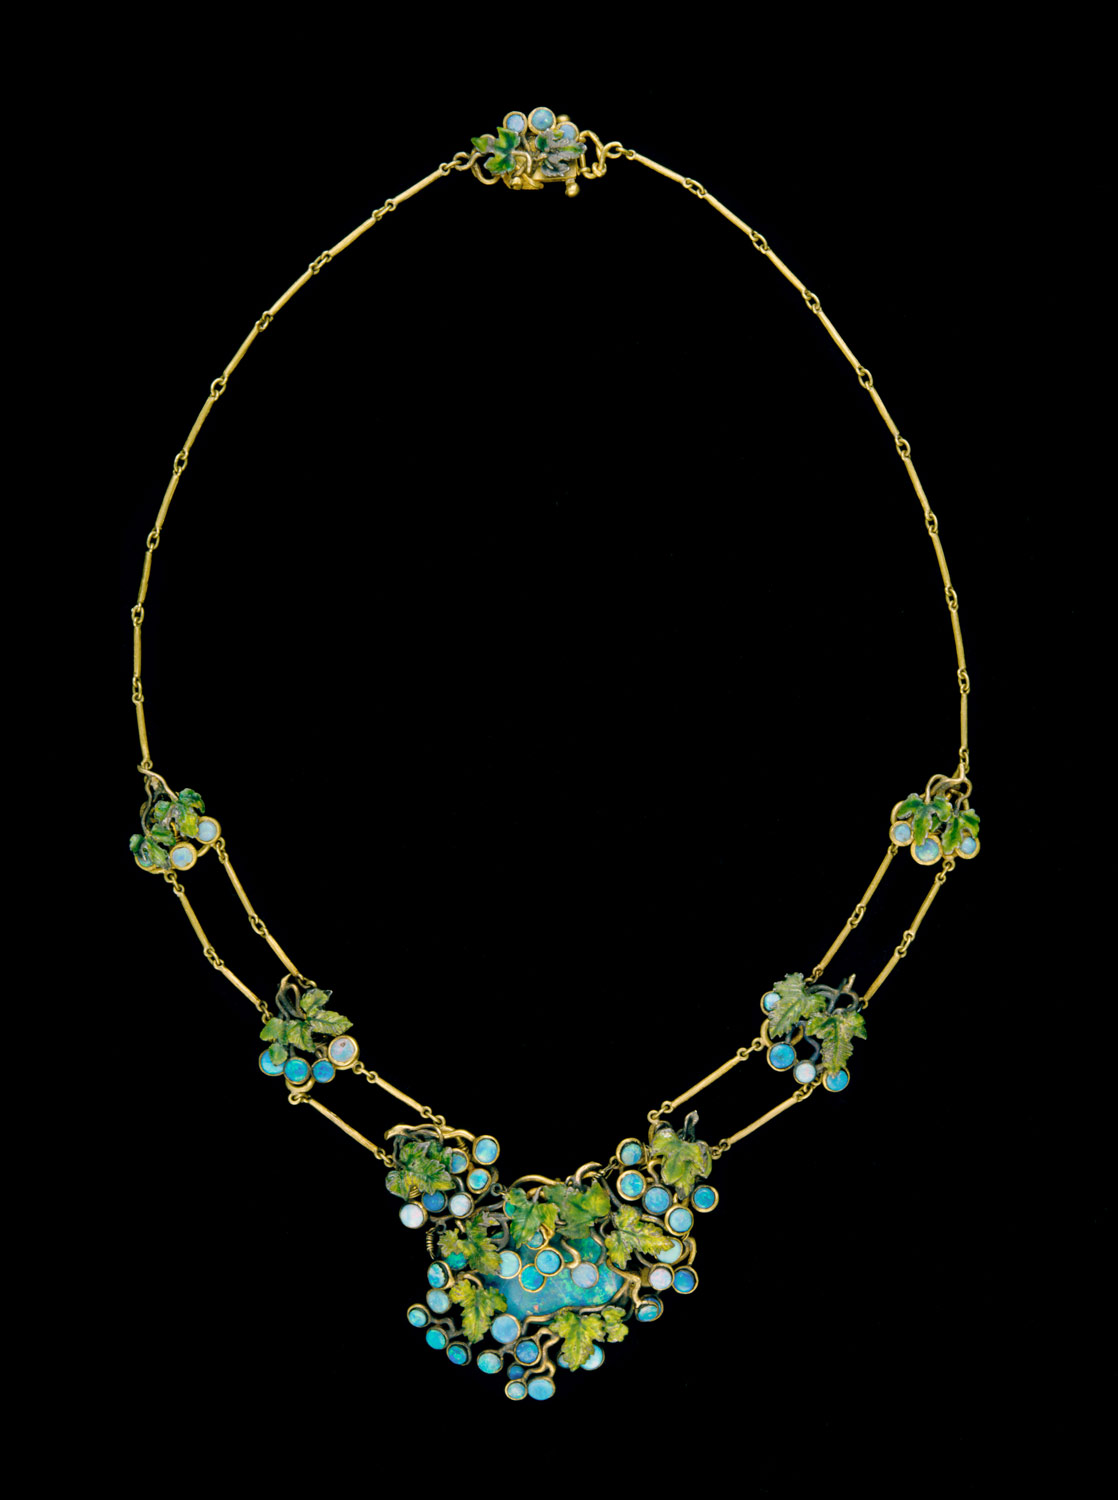 Louis Comfort Tiffany (American, New York 1848–1933 New York) Date: ca. 1904. Opals, gold, enamel. Photo Courtesy of the MET Museum.